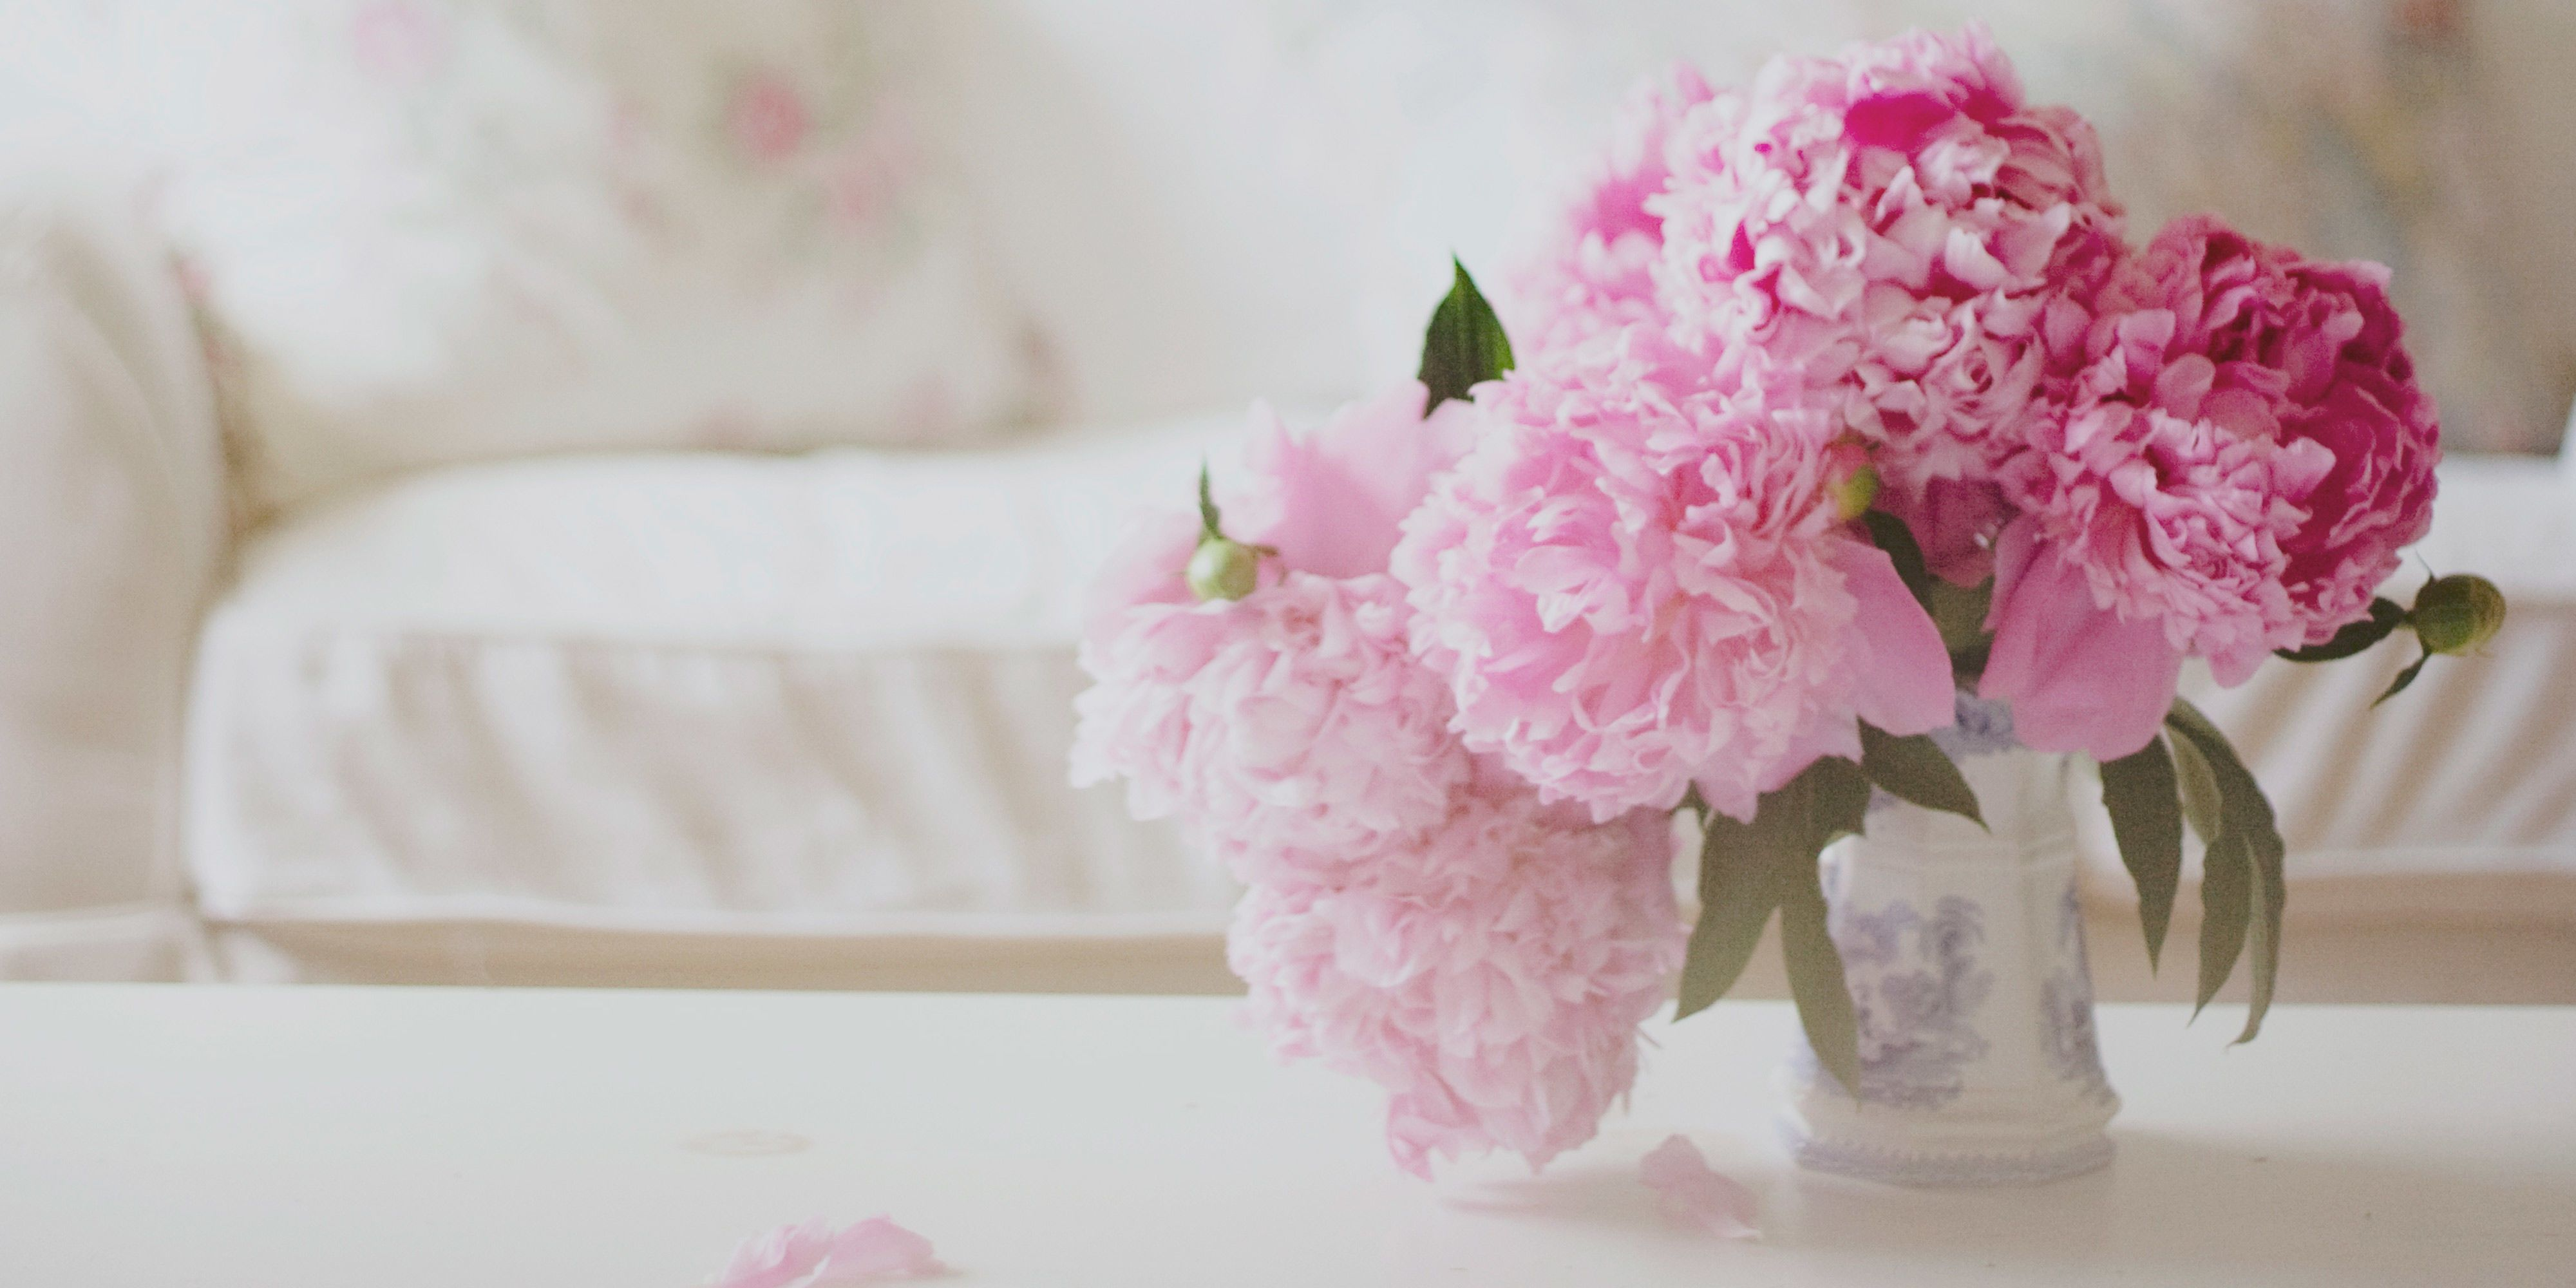 12 Facts About Peonies   History Of The Peony Flower